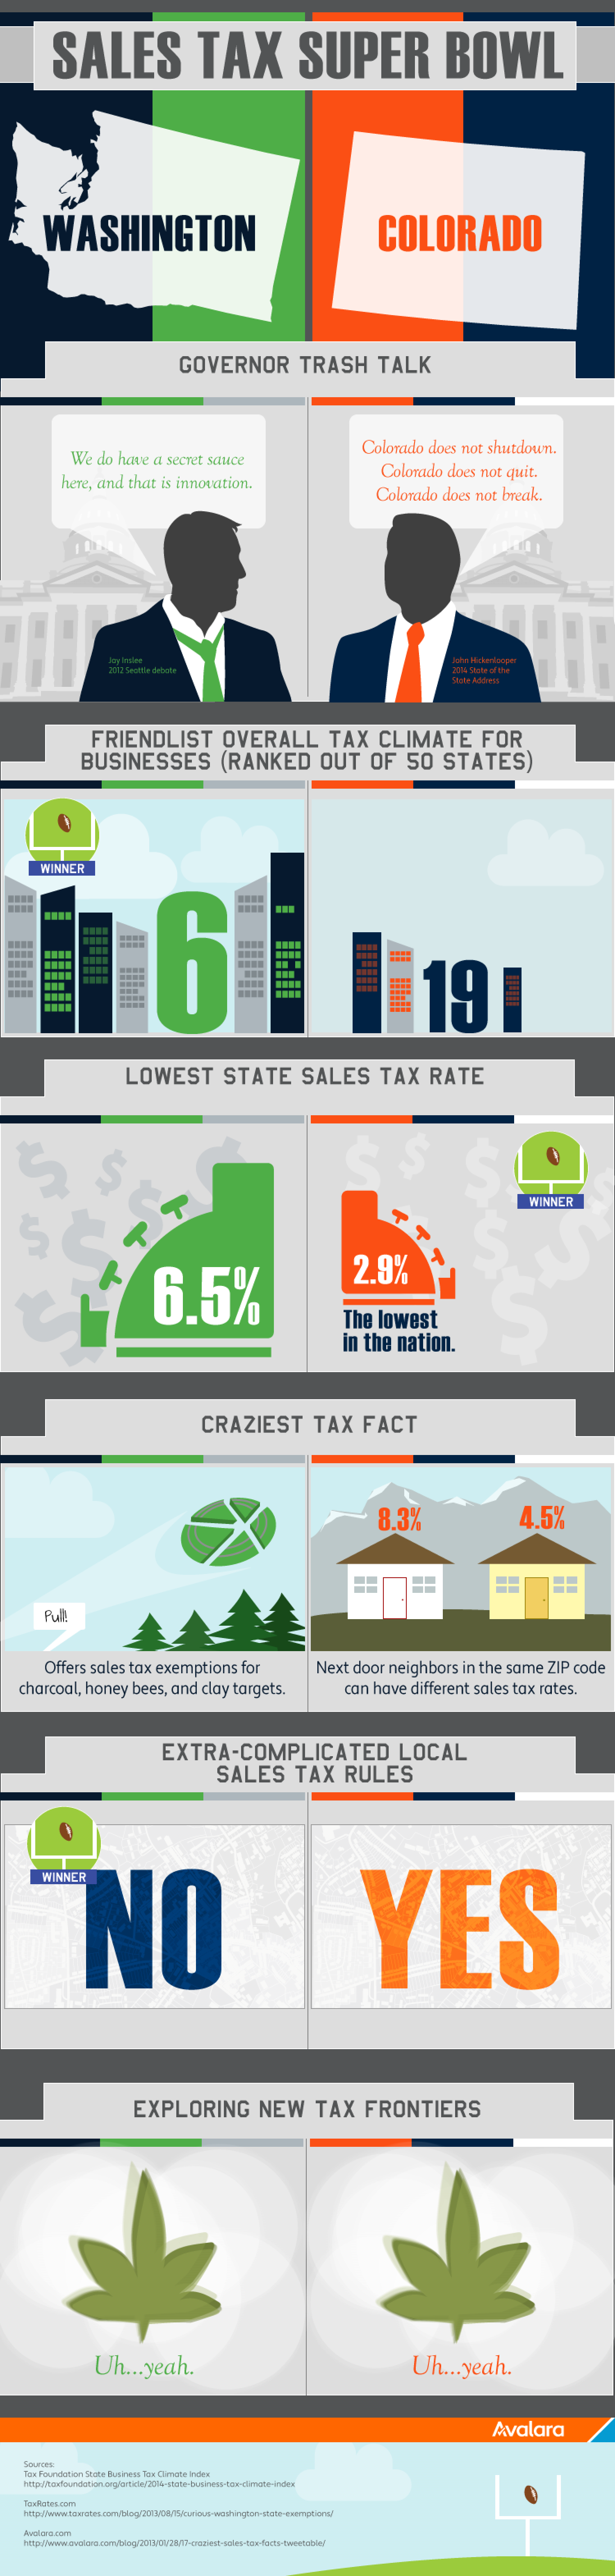 Sales Tax Super Bowl Infographic